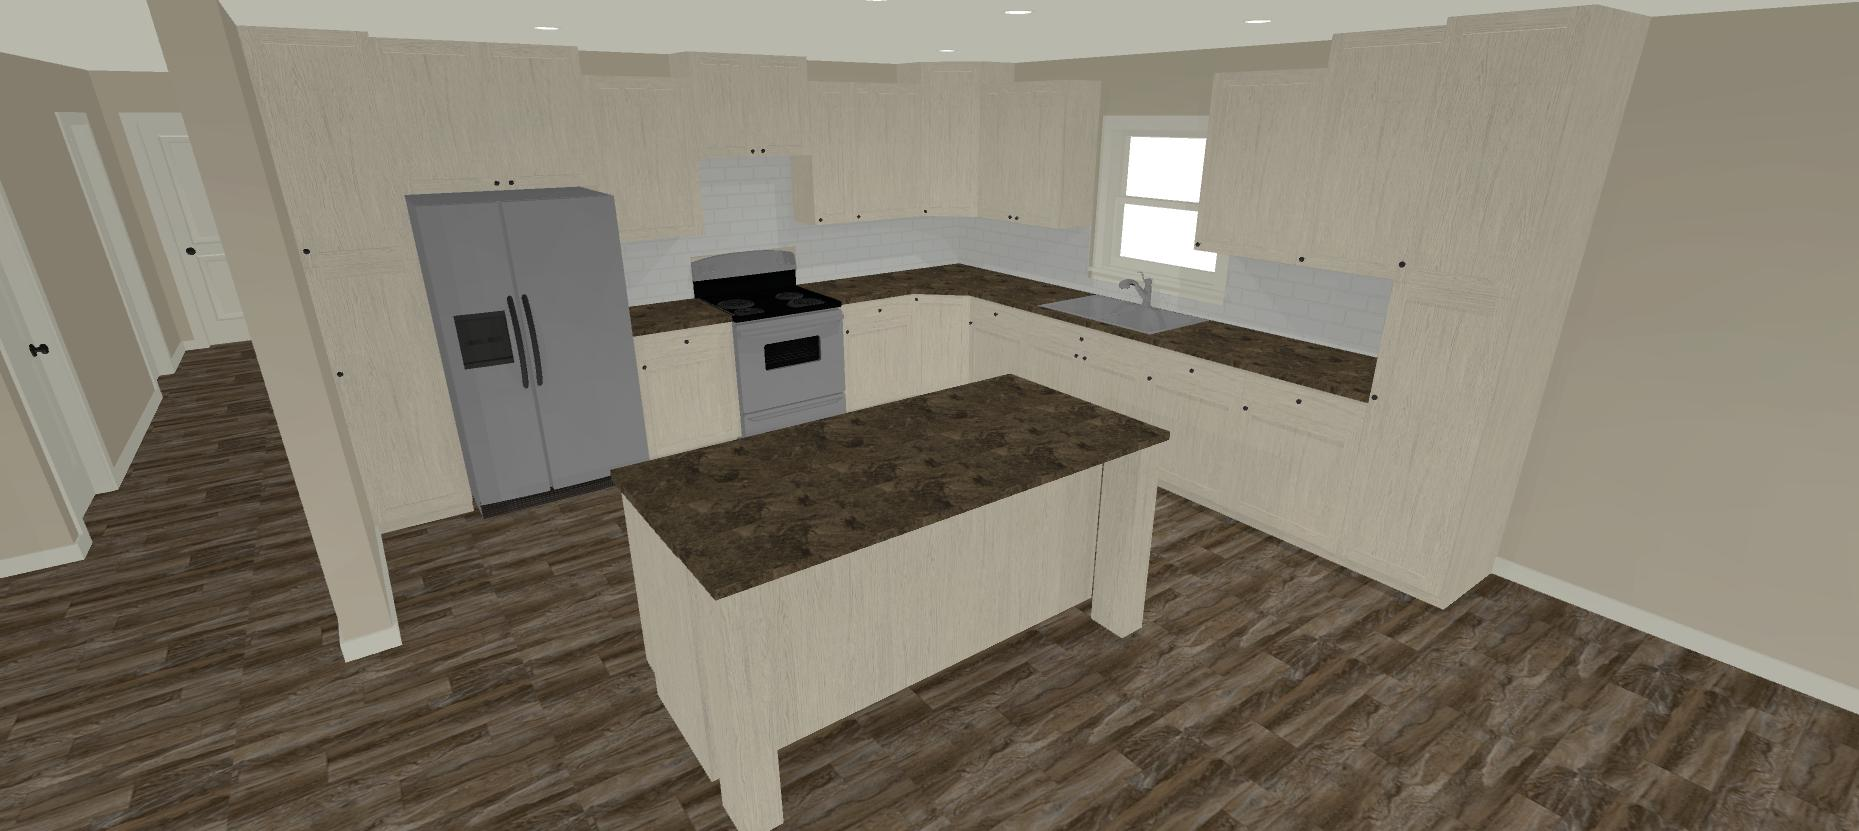 Grinnell Kitchen.jpg